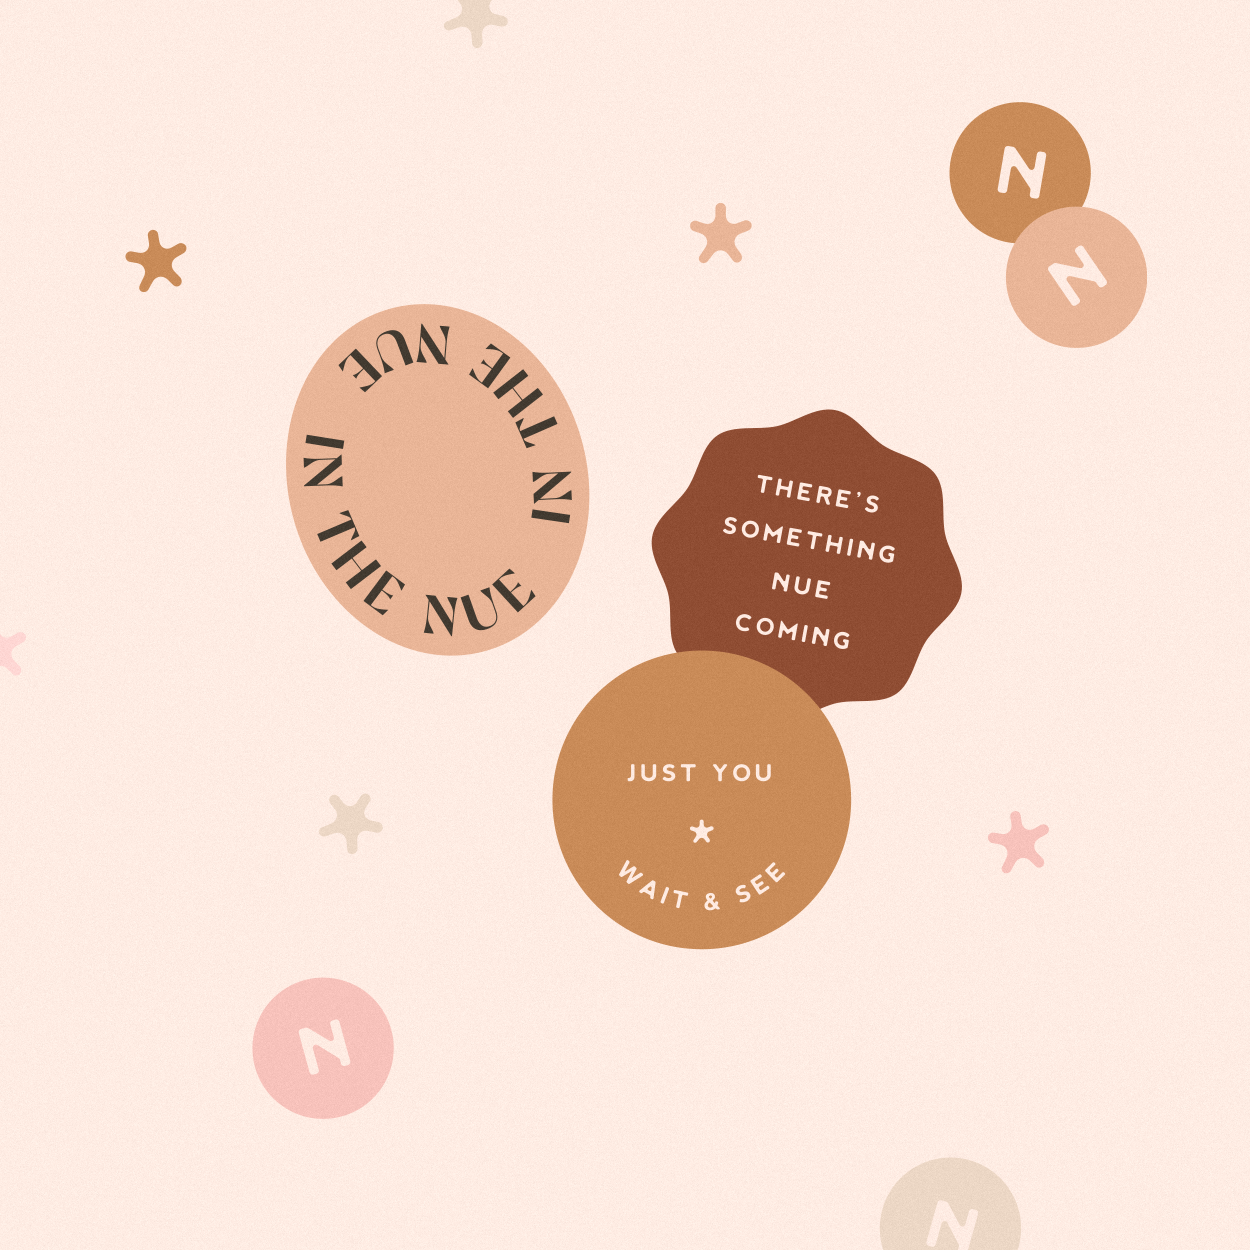 Sticker design for Nue, home, beauty & lifestyle brand specialsing in nude shades for their products - designed by Wiltshire-based graphic designer, Kaye Huett